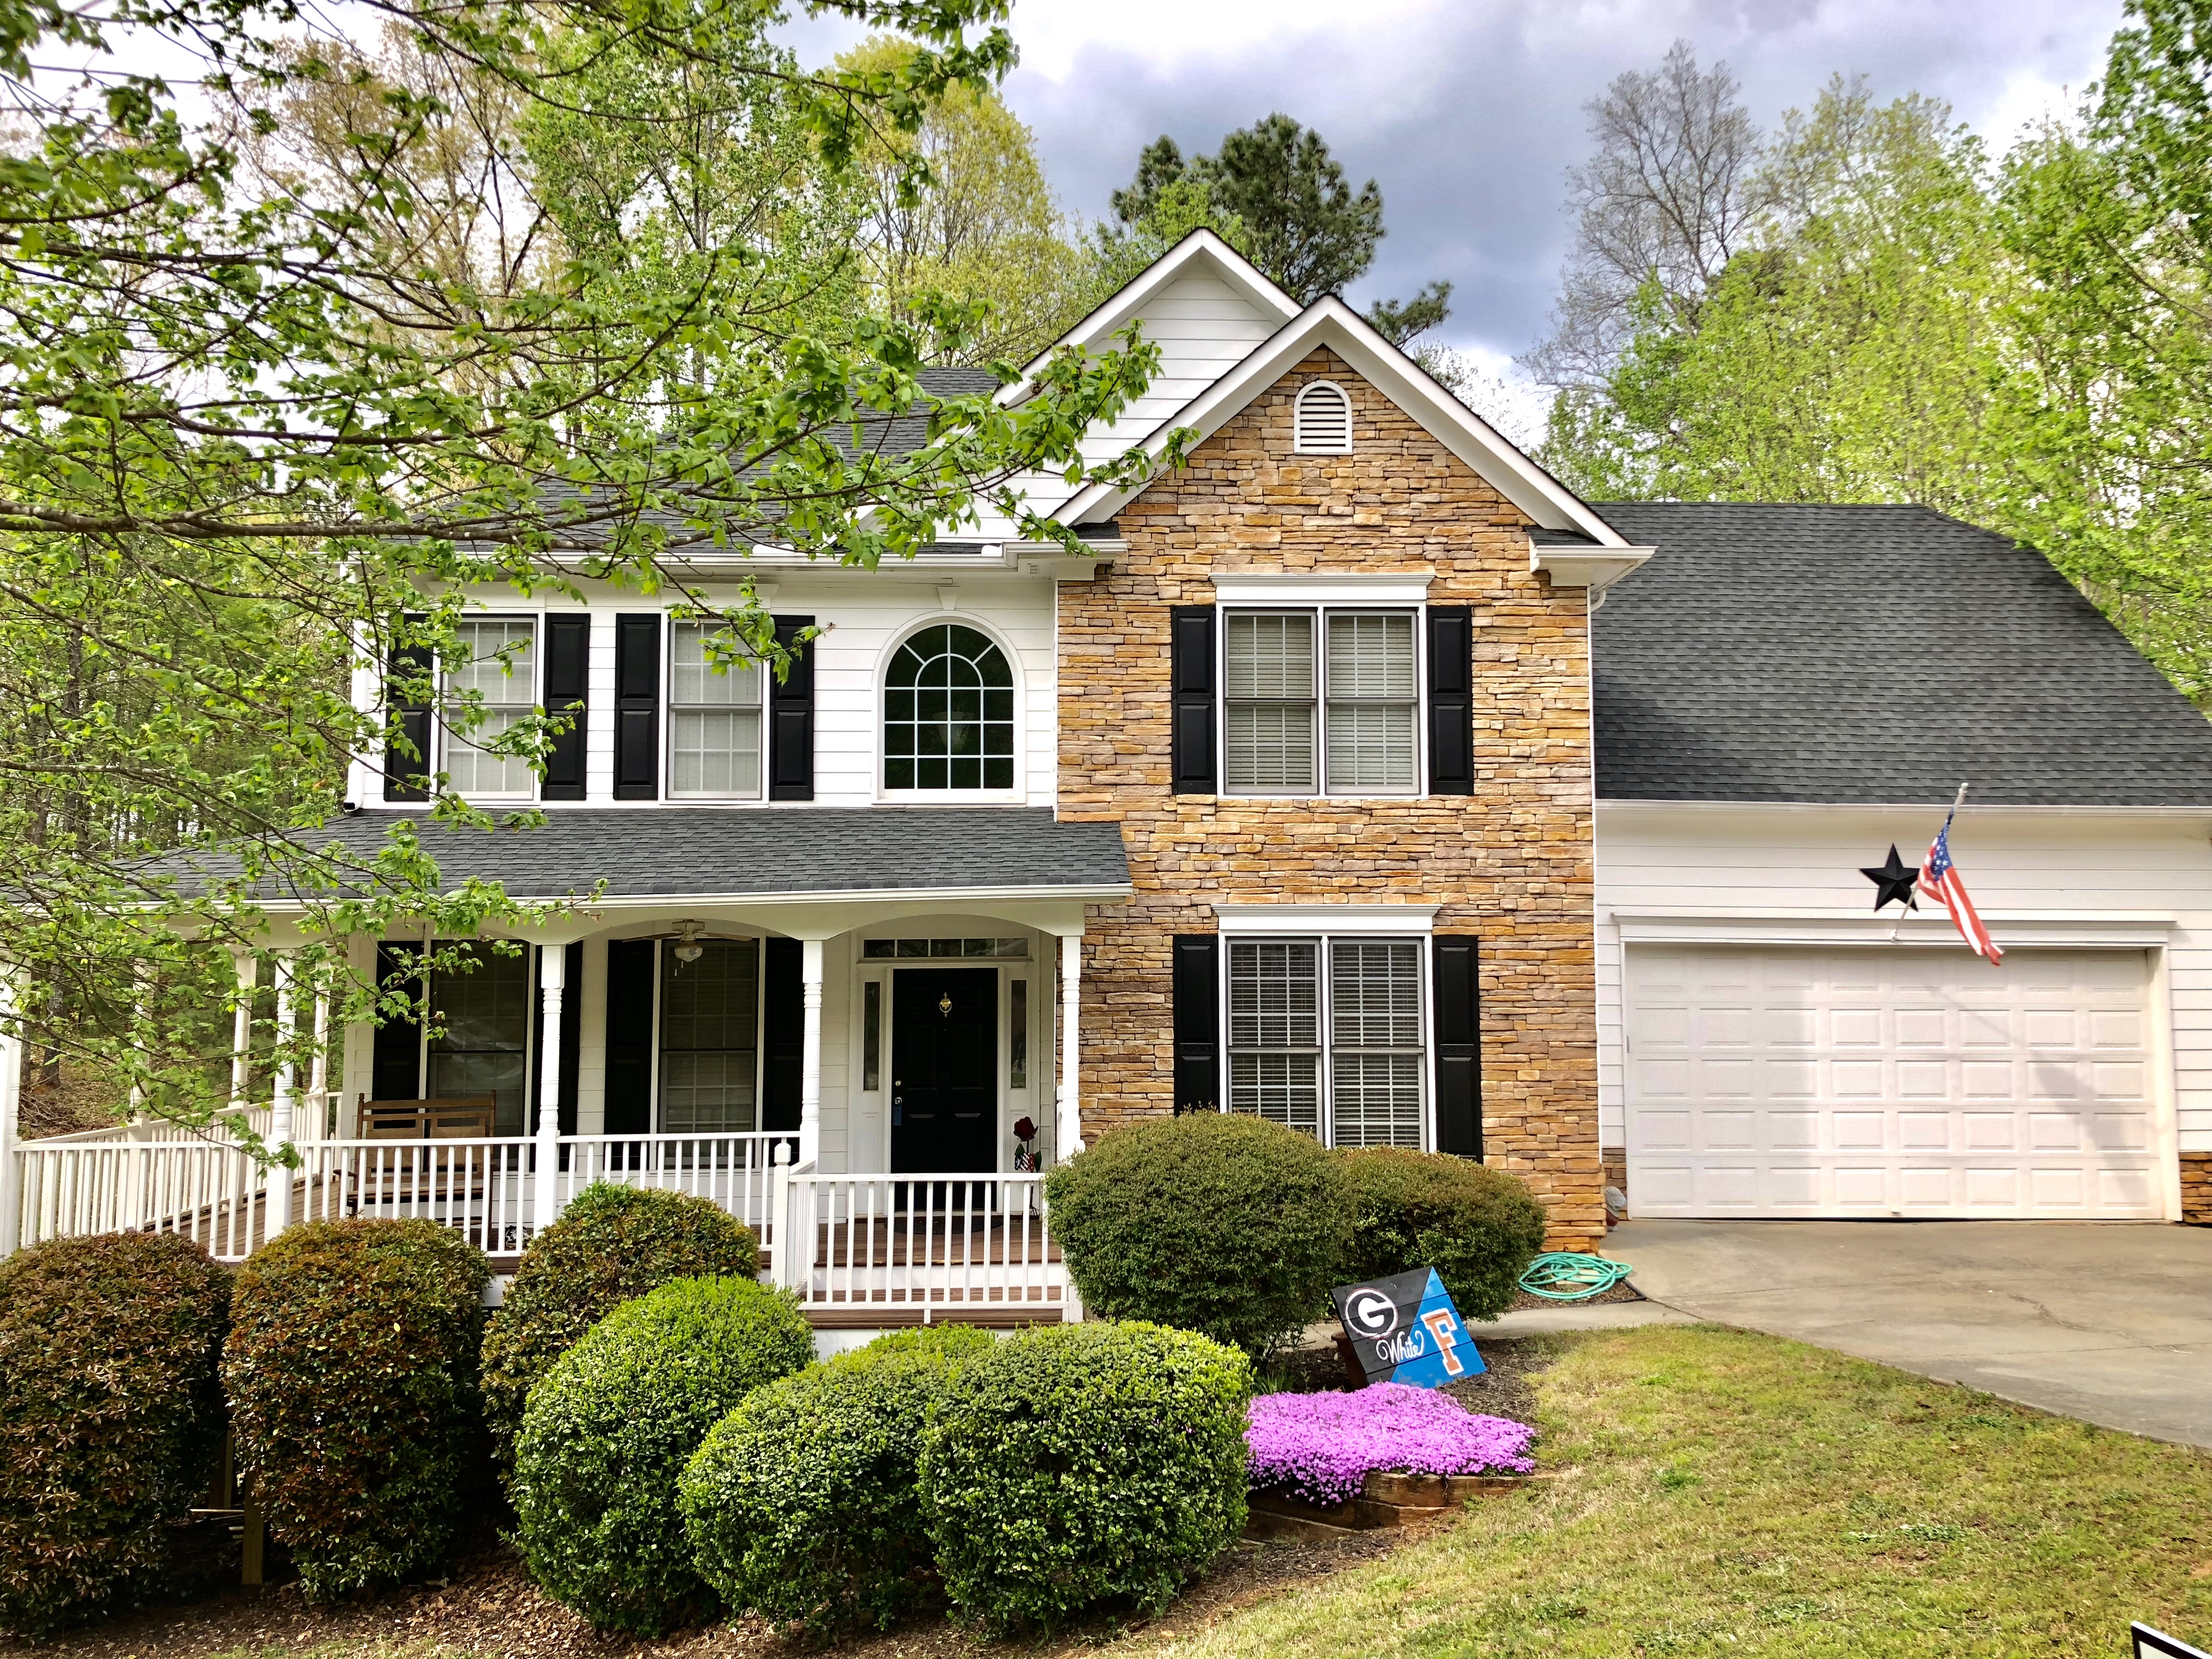 Photo of 219 Sable Trace Drive, Acworth, GA, 30102